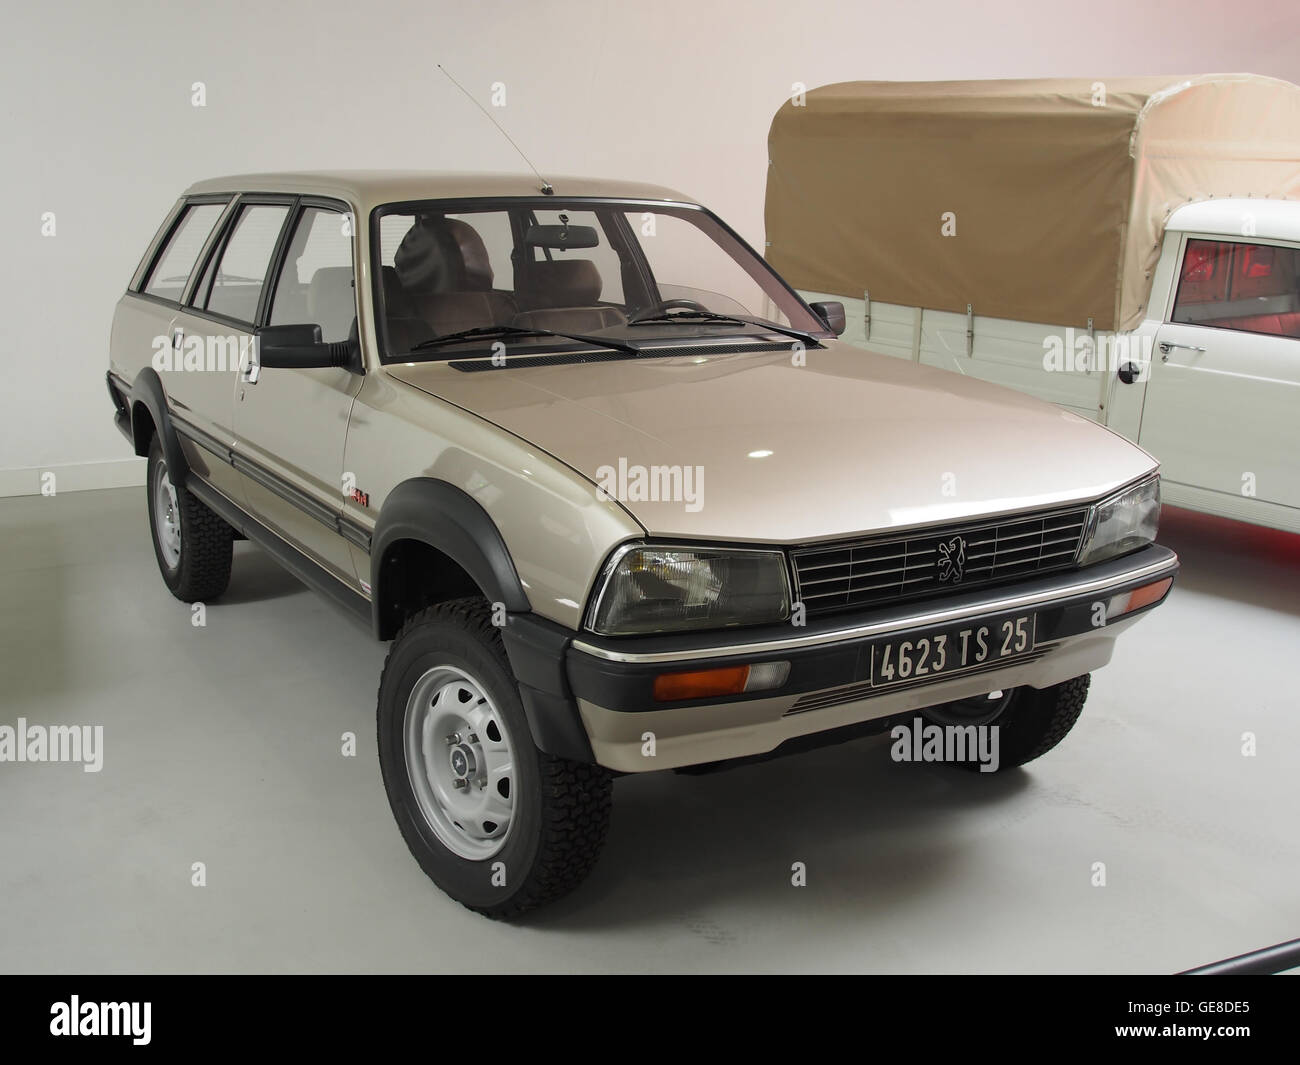 Peugeot 505 4x4 Dangel photo 2 - Stock Image